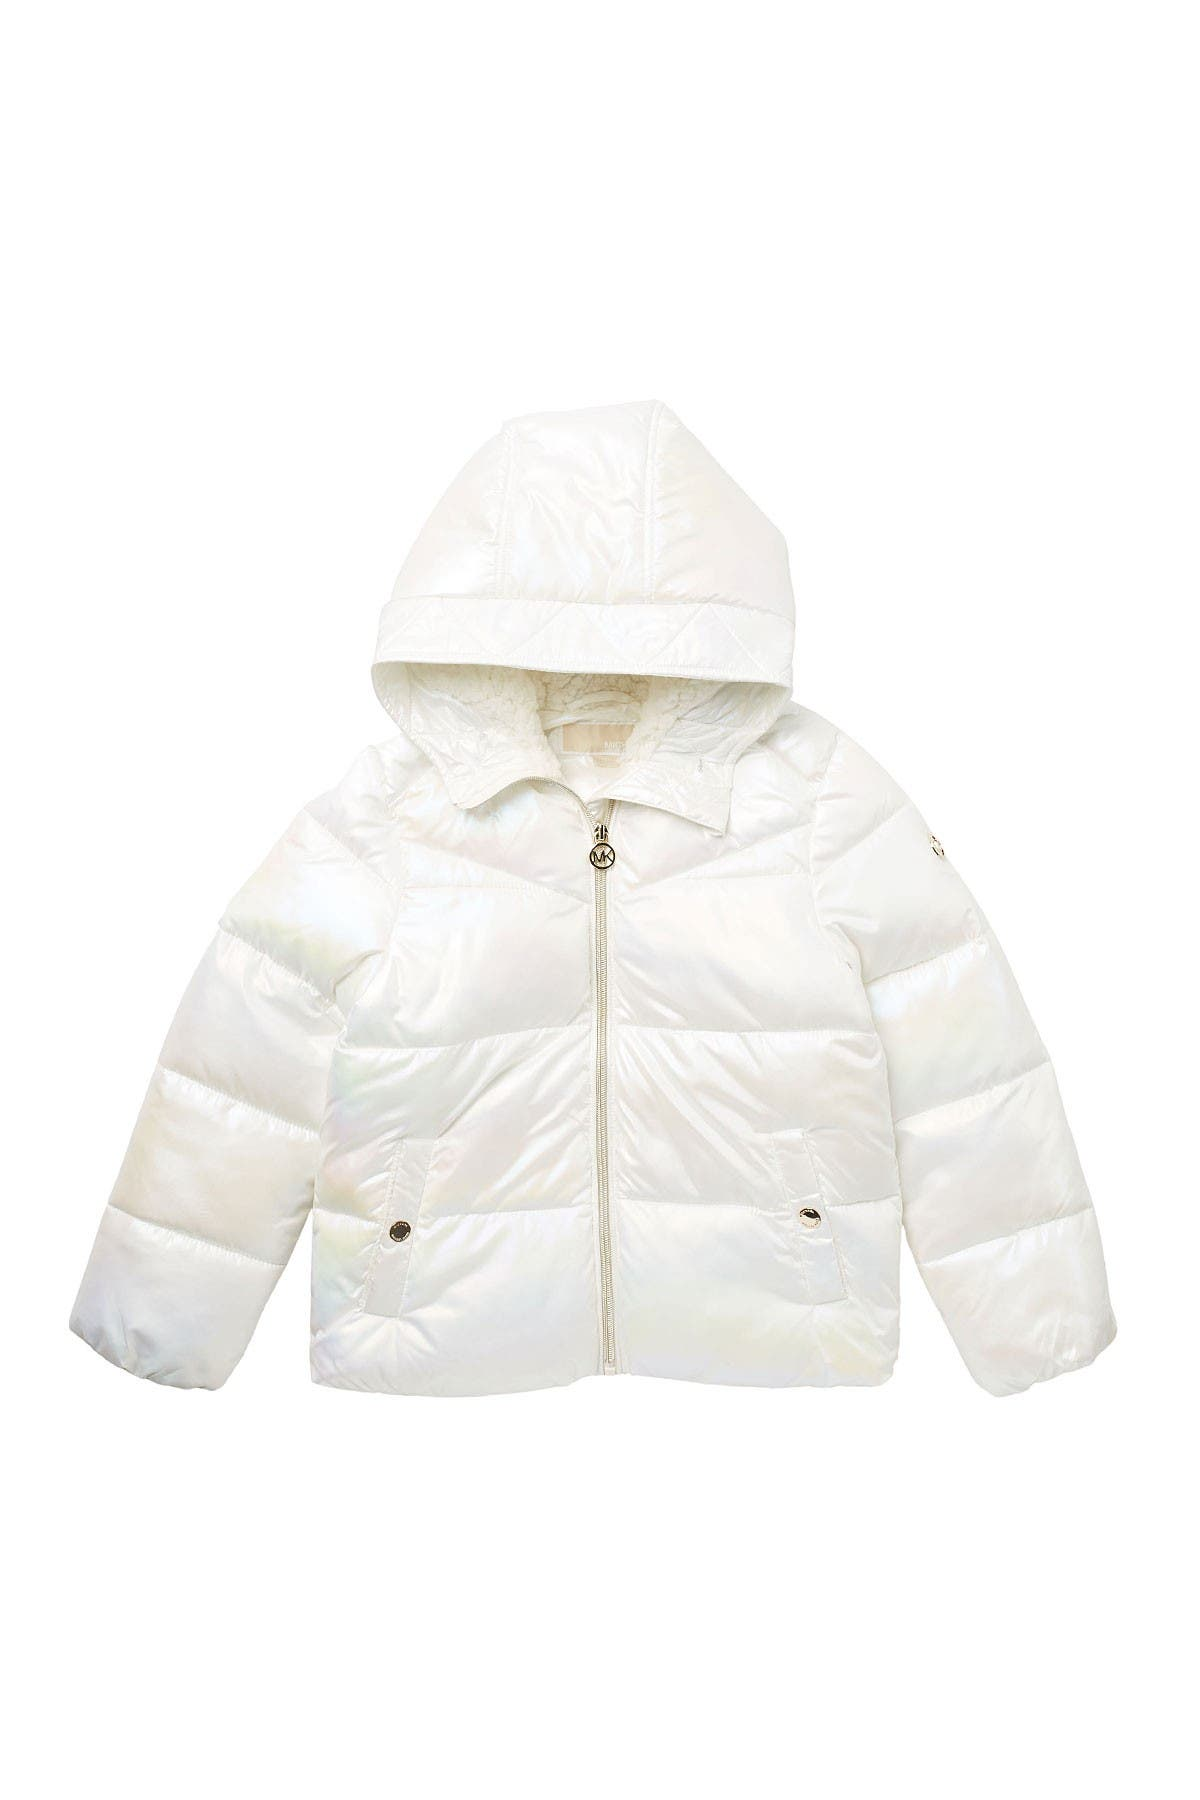 Image of Michael Kors Faux Shearling Lined Hood Iridescent Puffer Jacket